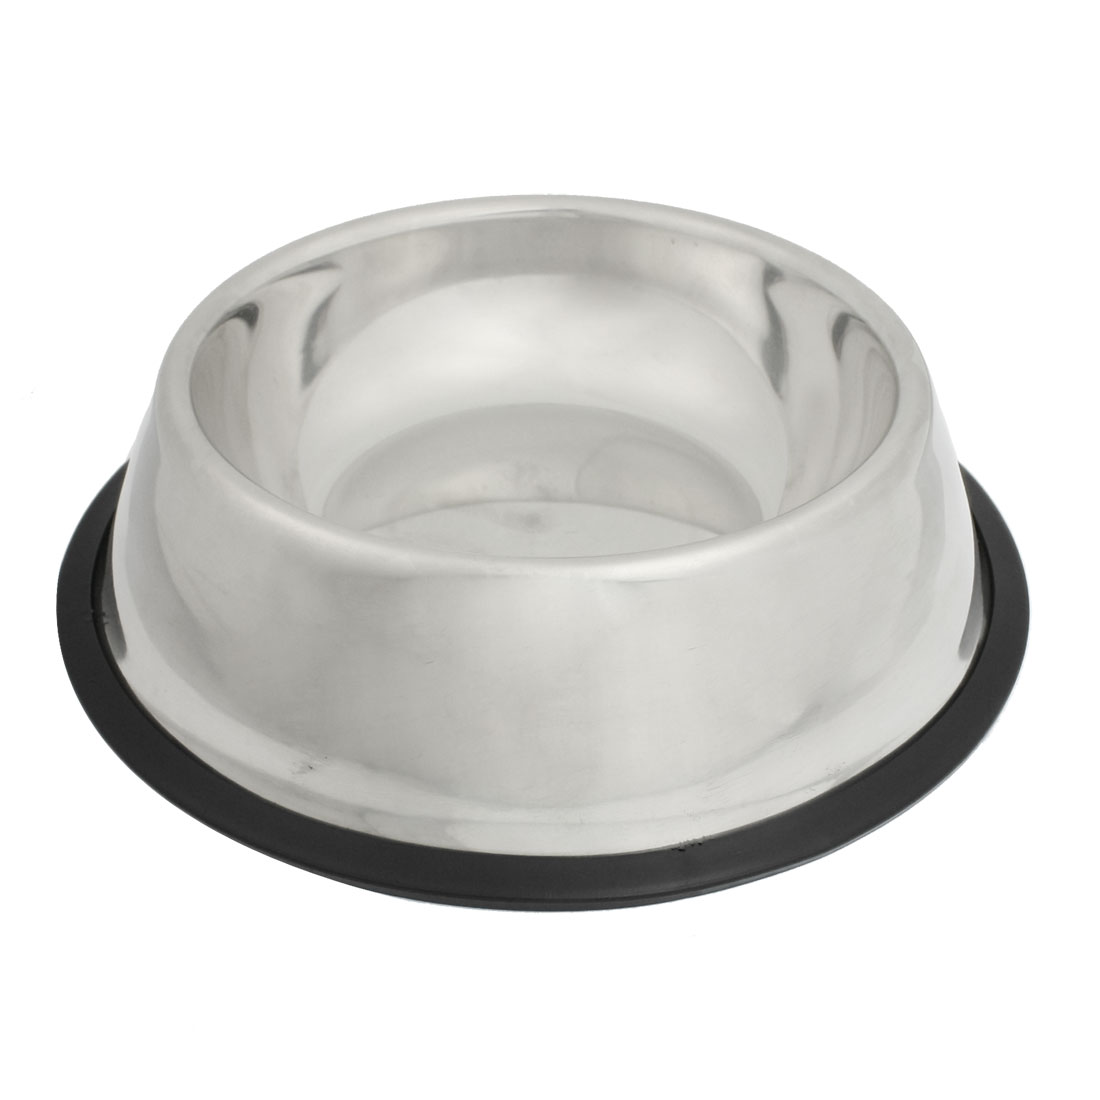 Doggy Dog Pet Stainless Steel Food Water Bowl Dish 8.5 inch